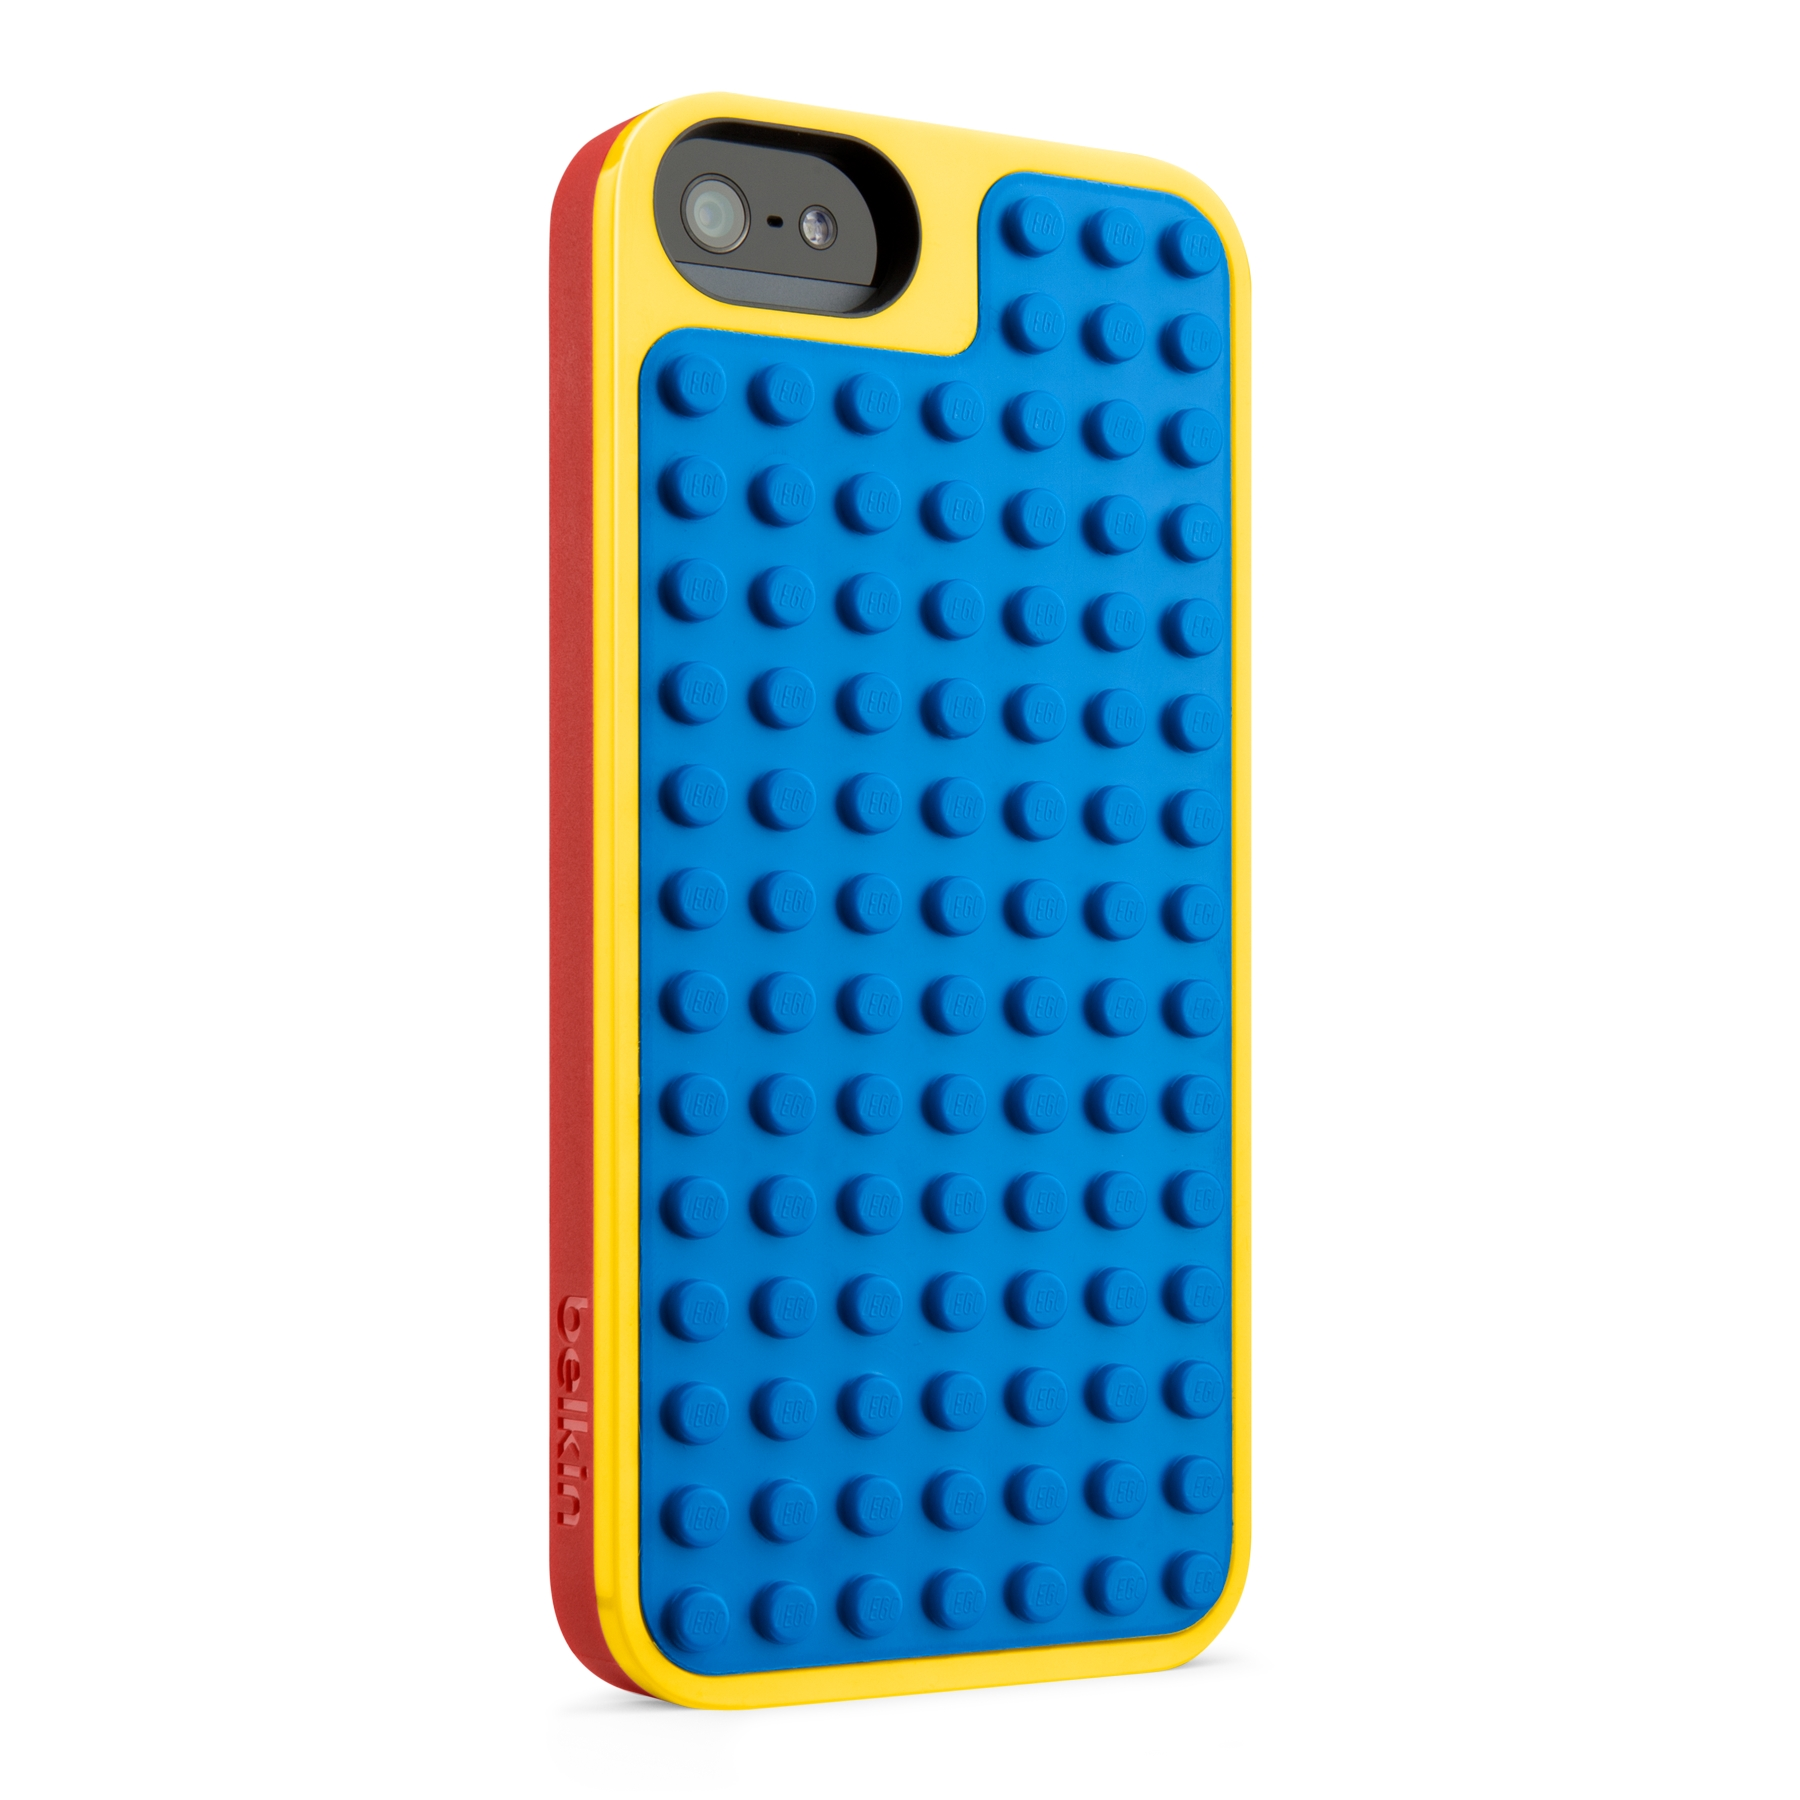 Belkin Lego Case Iphone